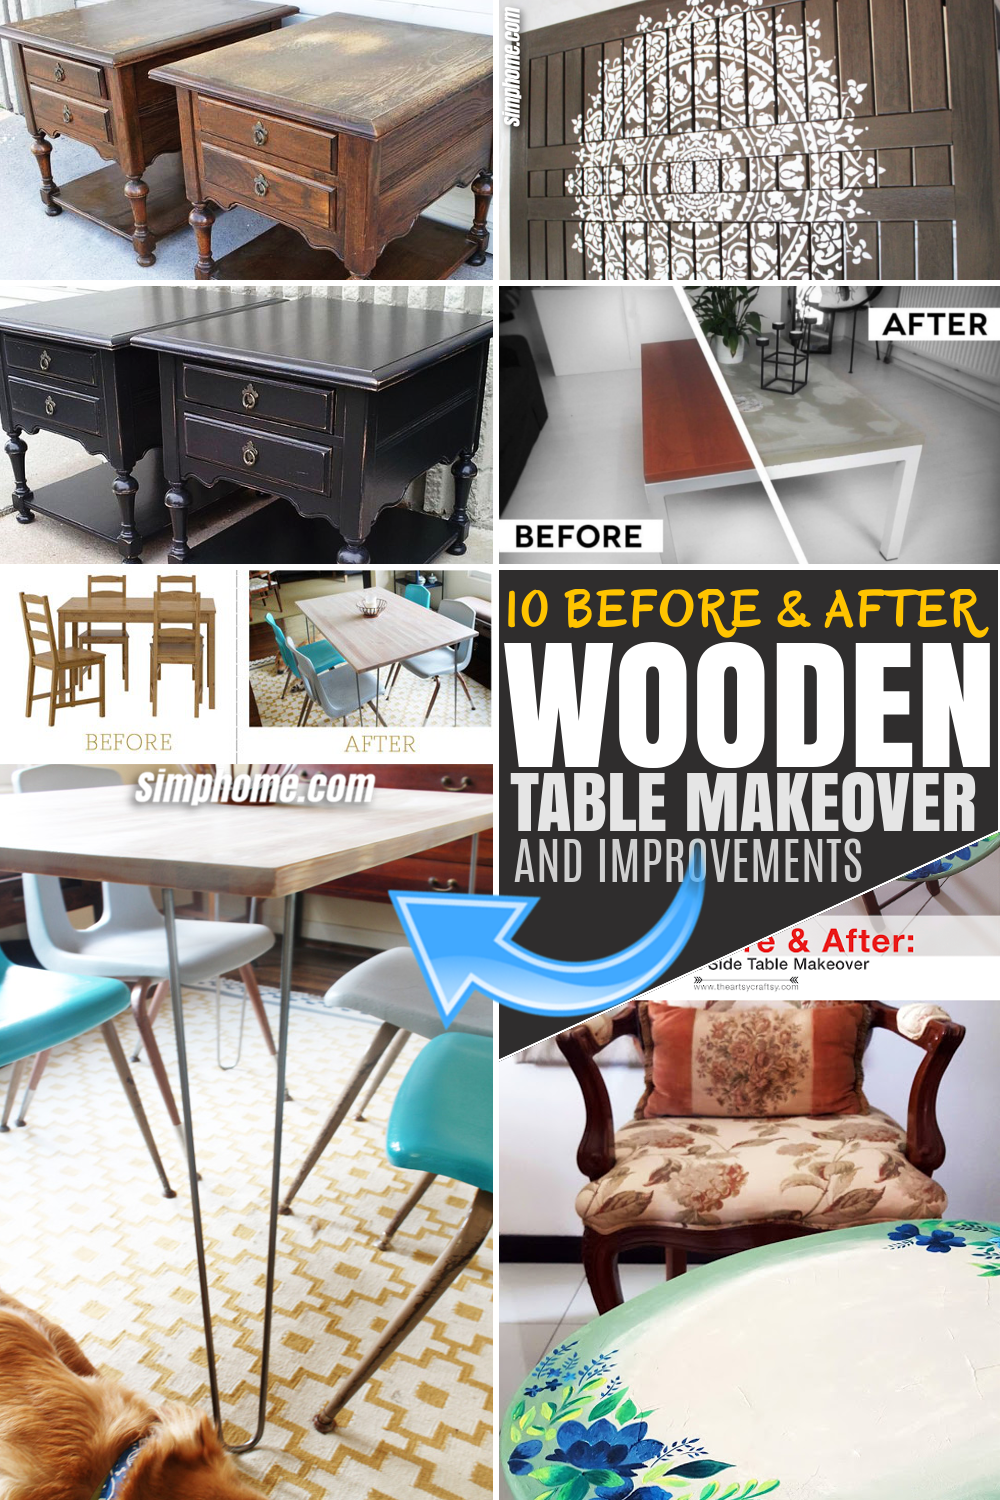 SIMPHOME.COM 10 Before and After Wooden Table Makeover Project Featured PINTEREST Image